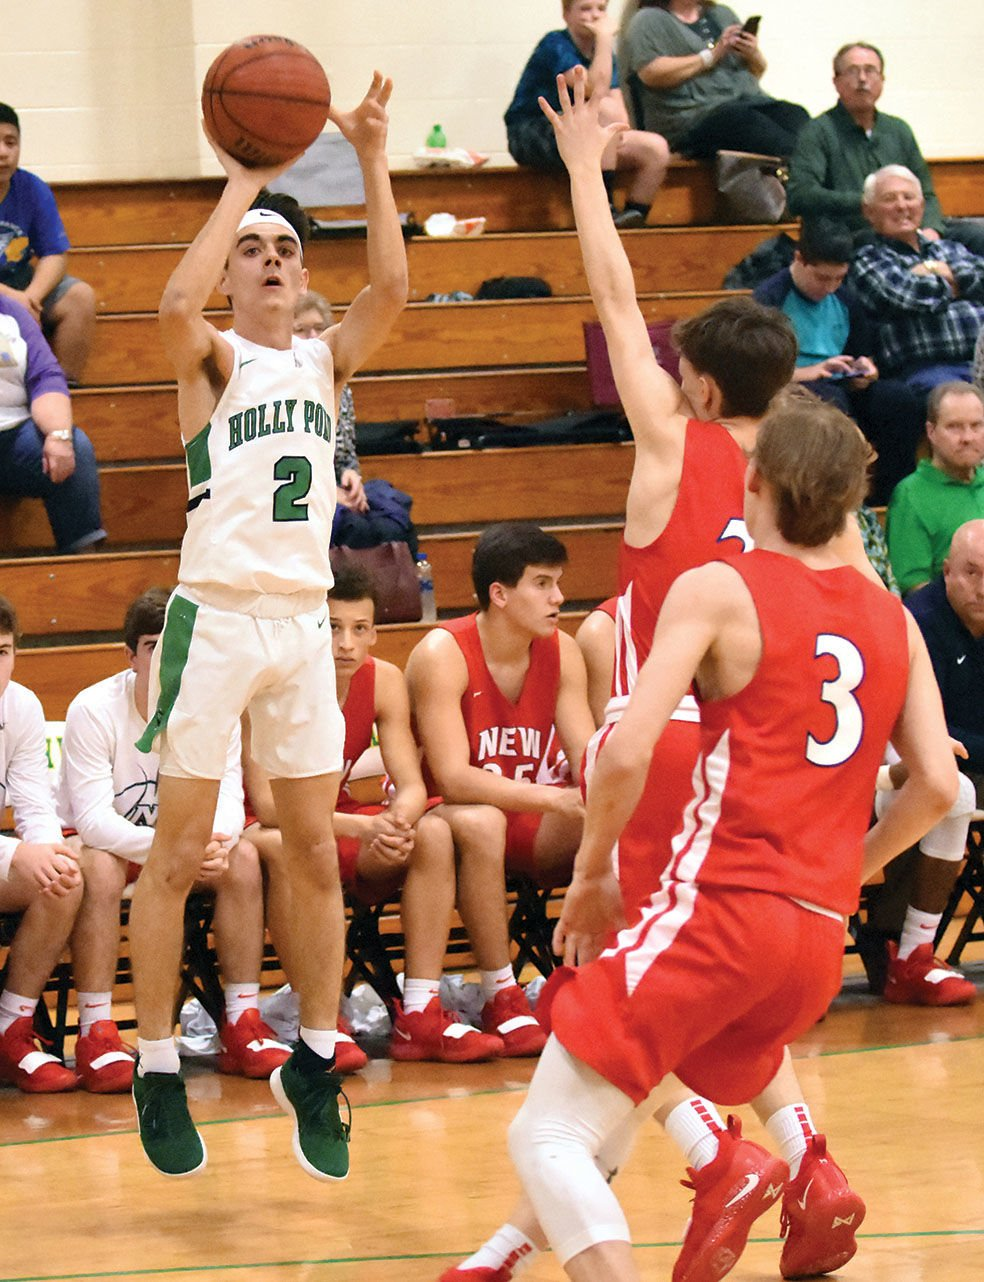 df3a1cabe8d Holly Pond s Isaac Ludwig knocks down a 3-pointer during the first half of  Thursday s game.